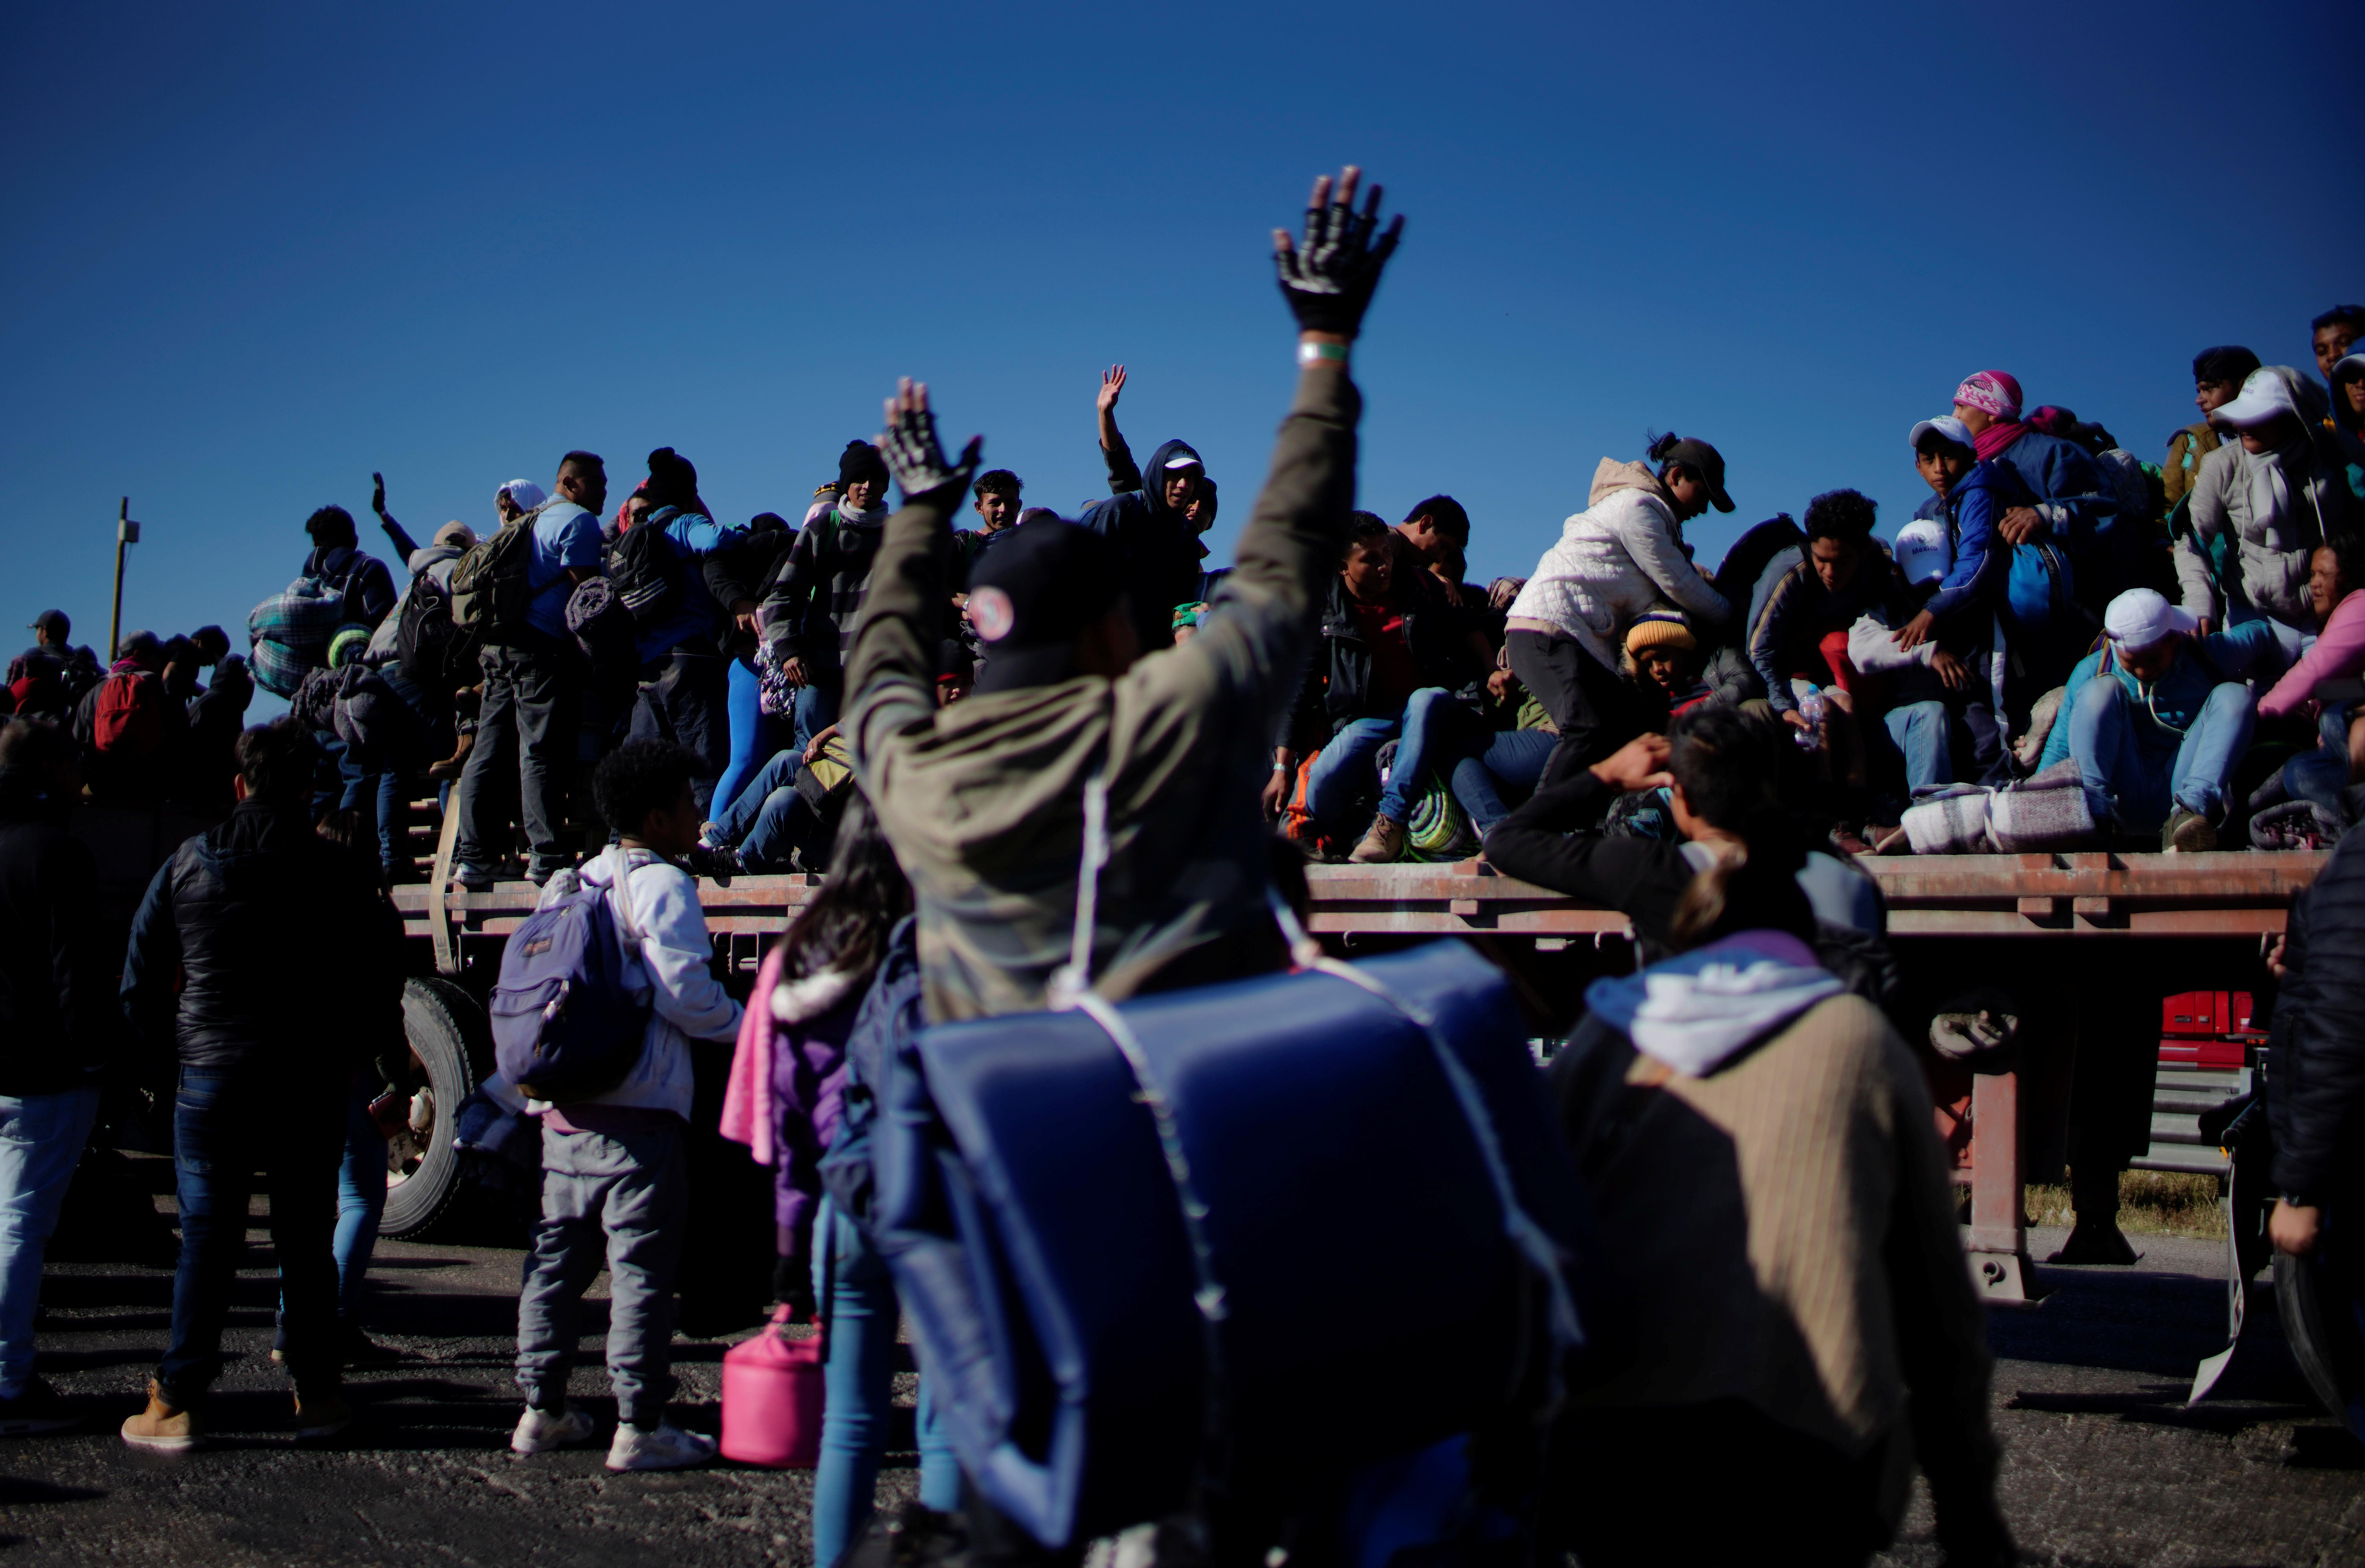 Migrants react as they pass by in the back of a truck during their journey towards the United States, in Mexico City